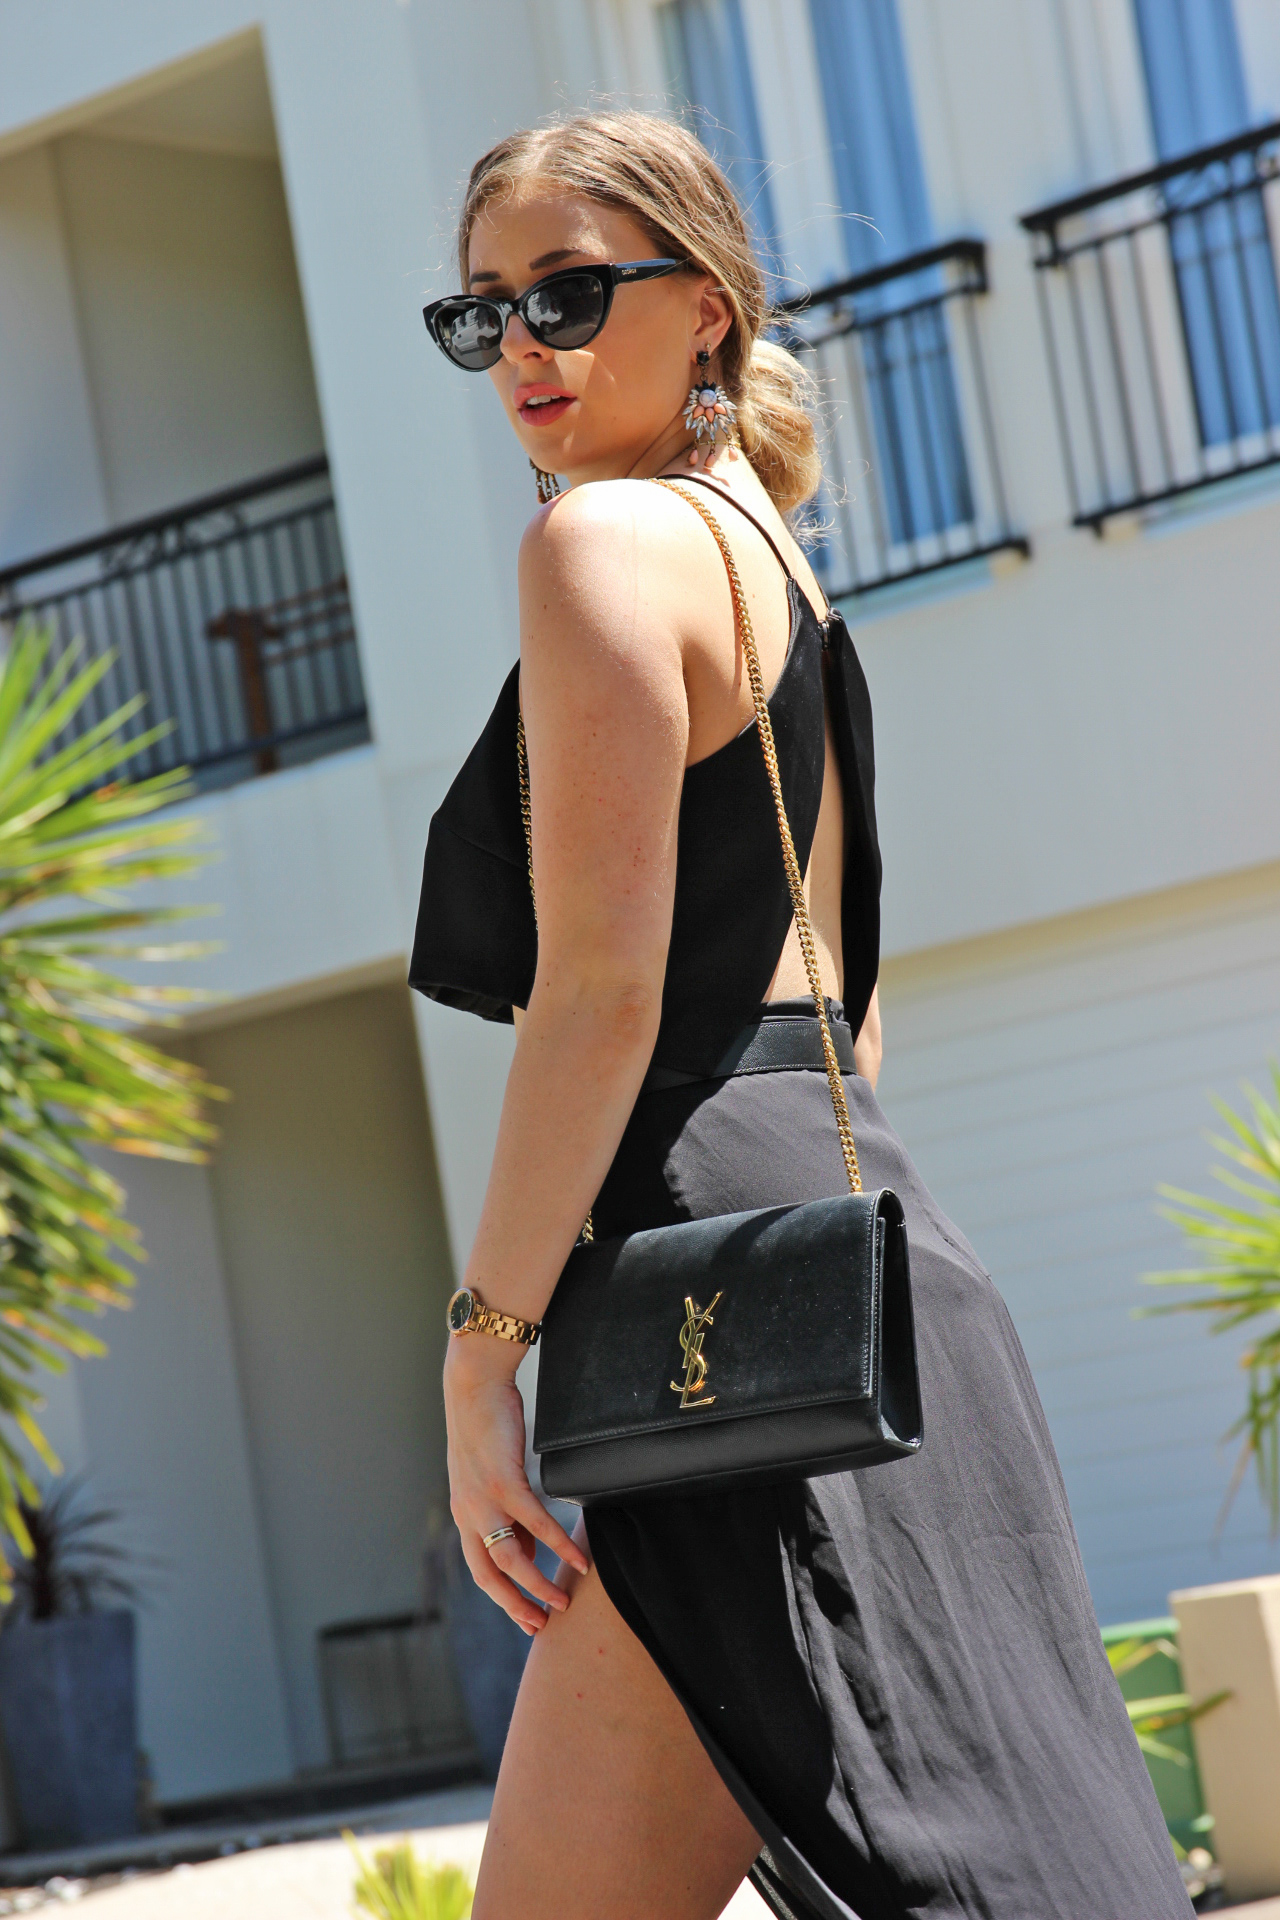 Melissa Zahorujko with Style Secret Handbag Hire